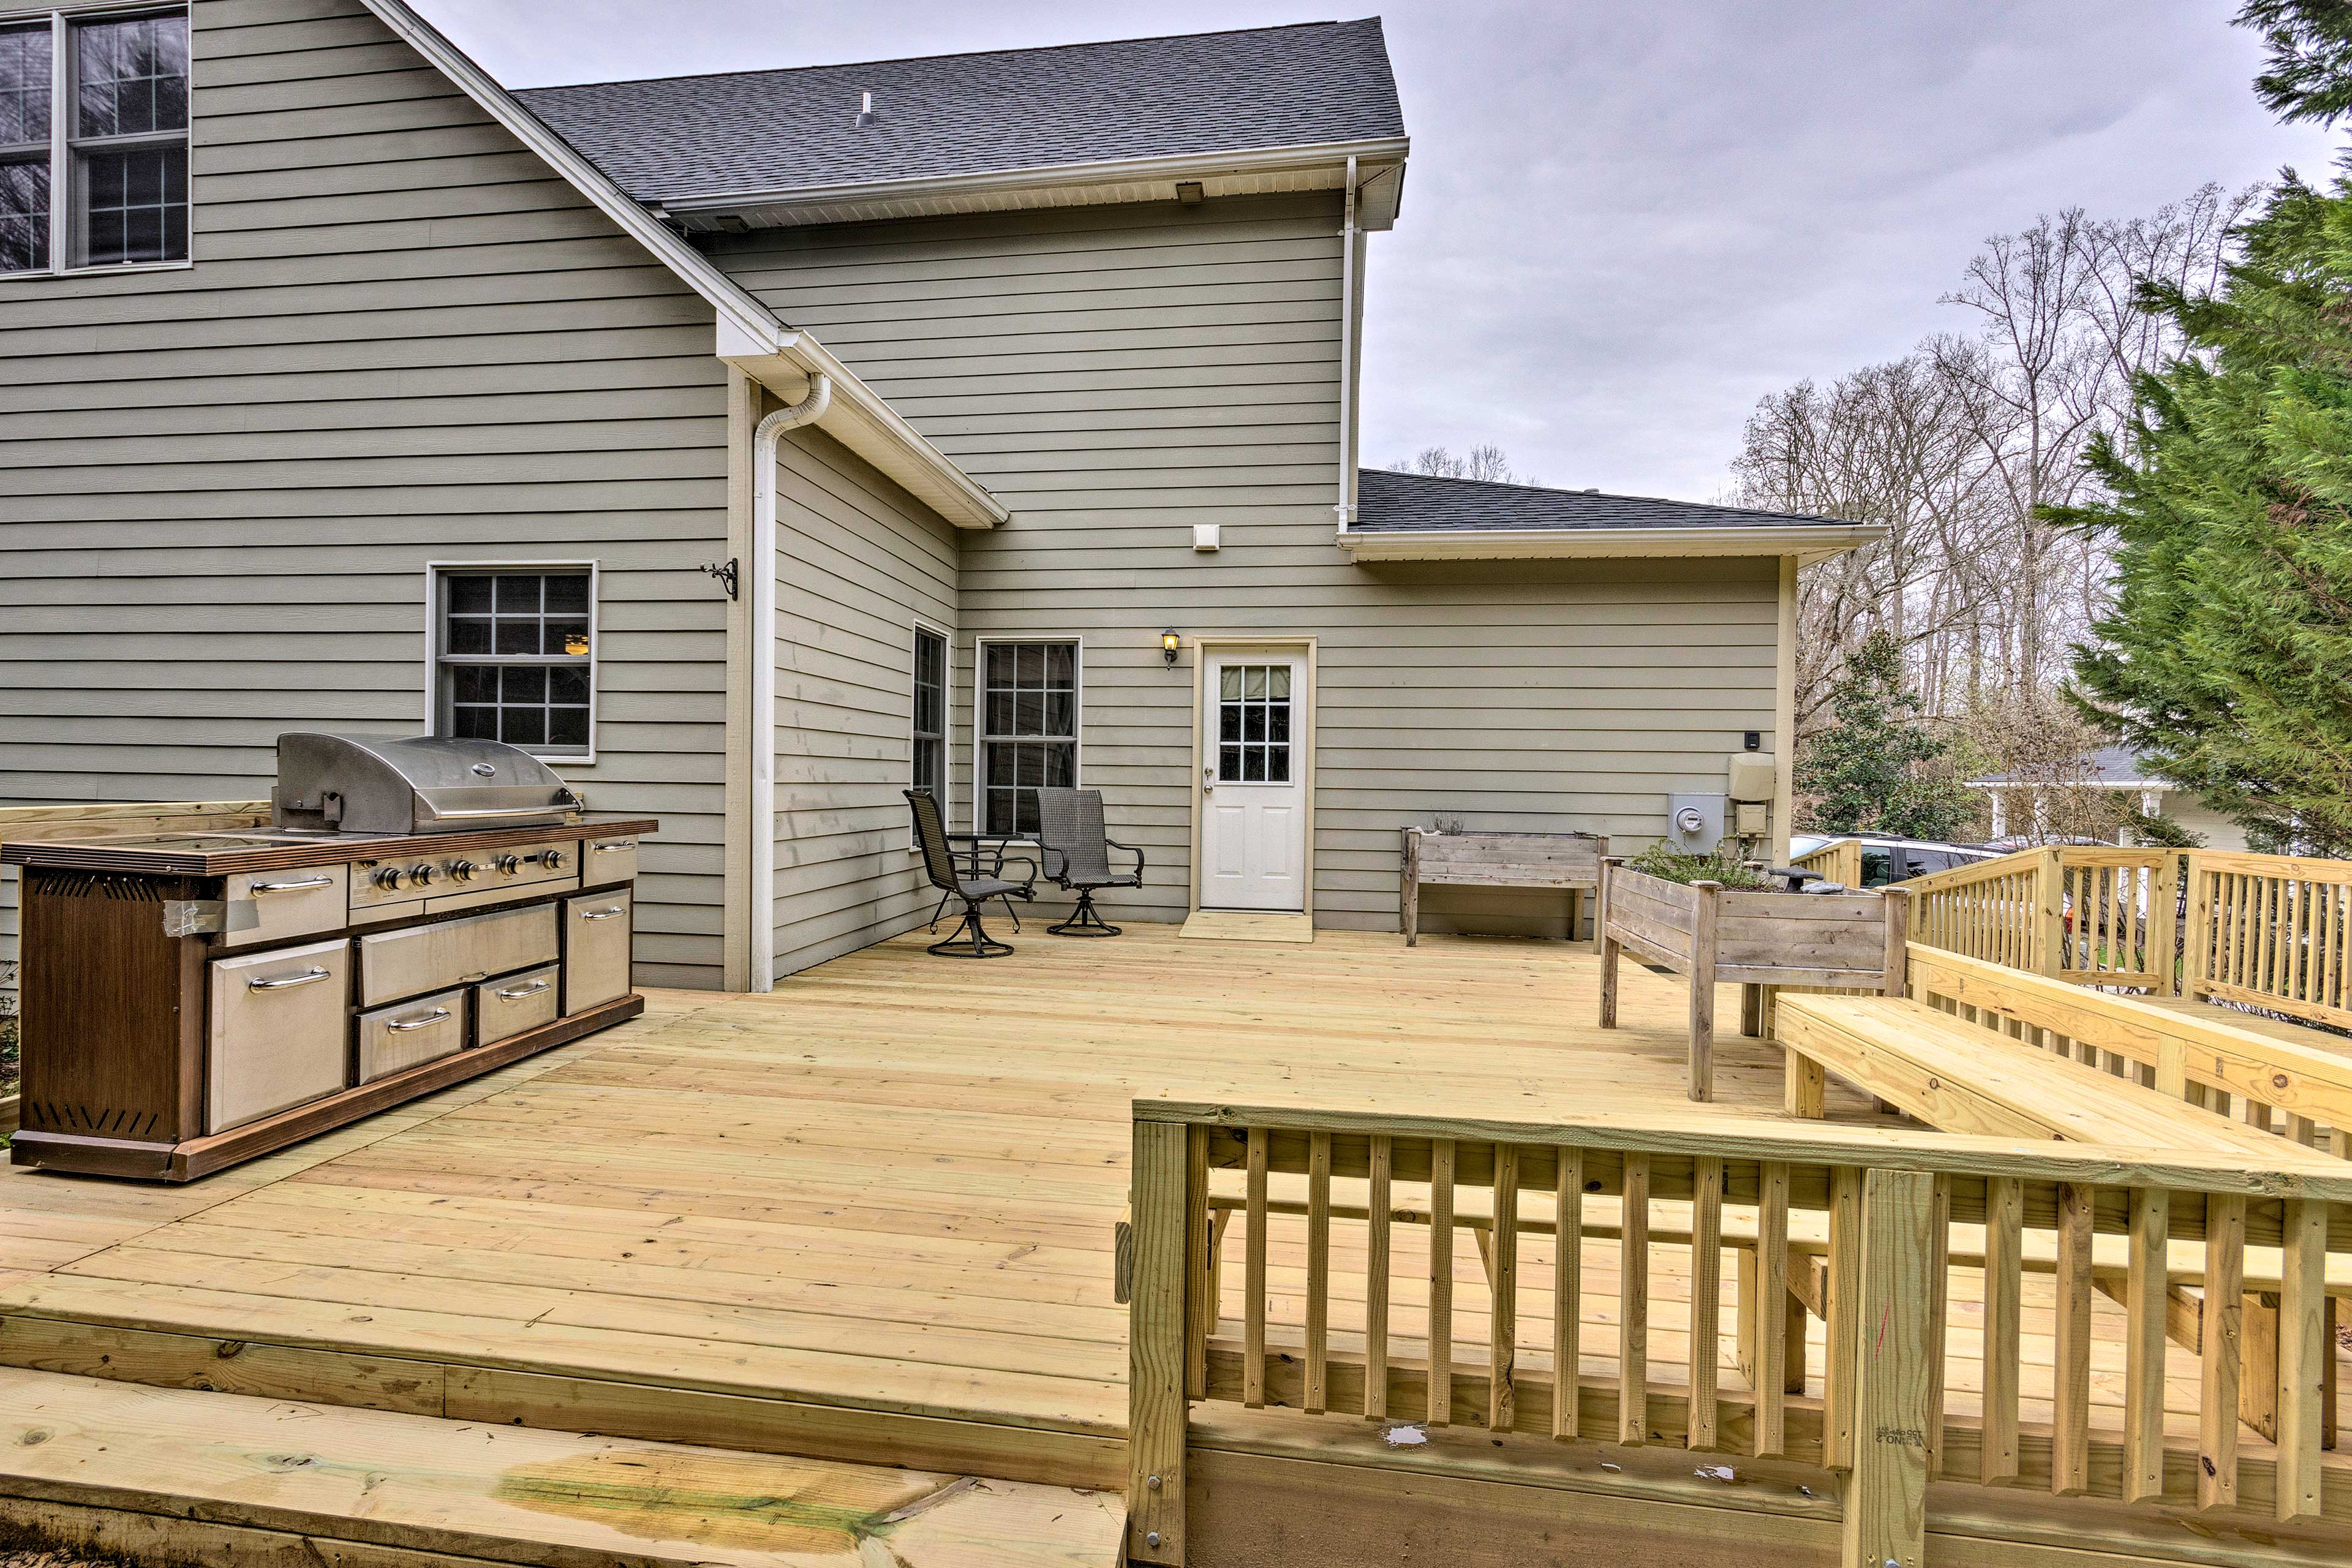 This property boasts a backyard with a deck and gas grill!